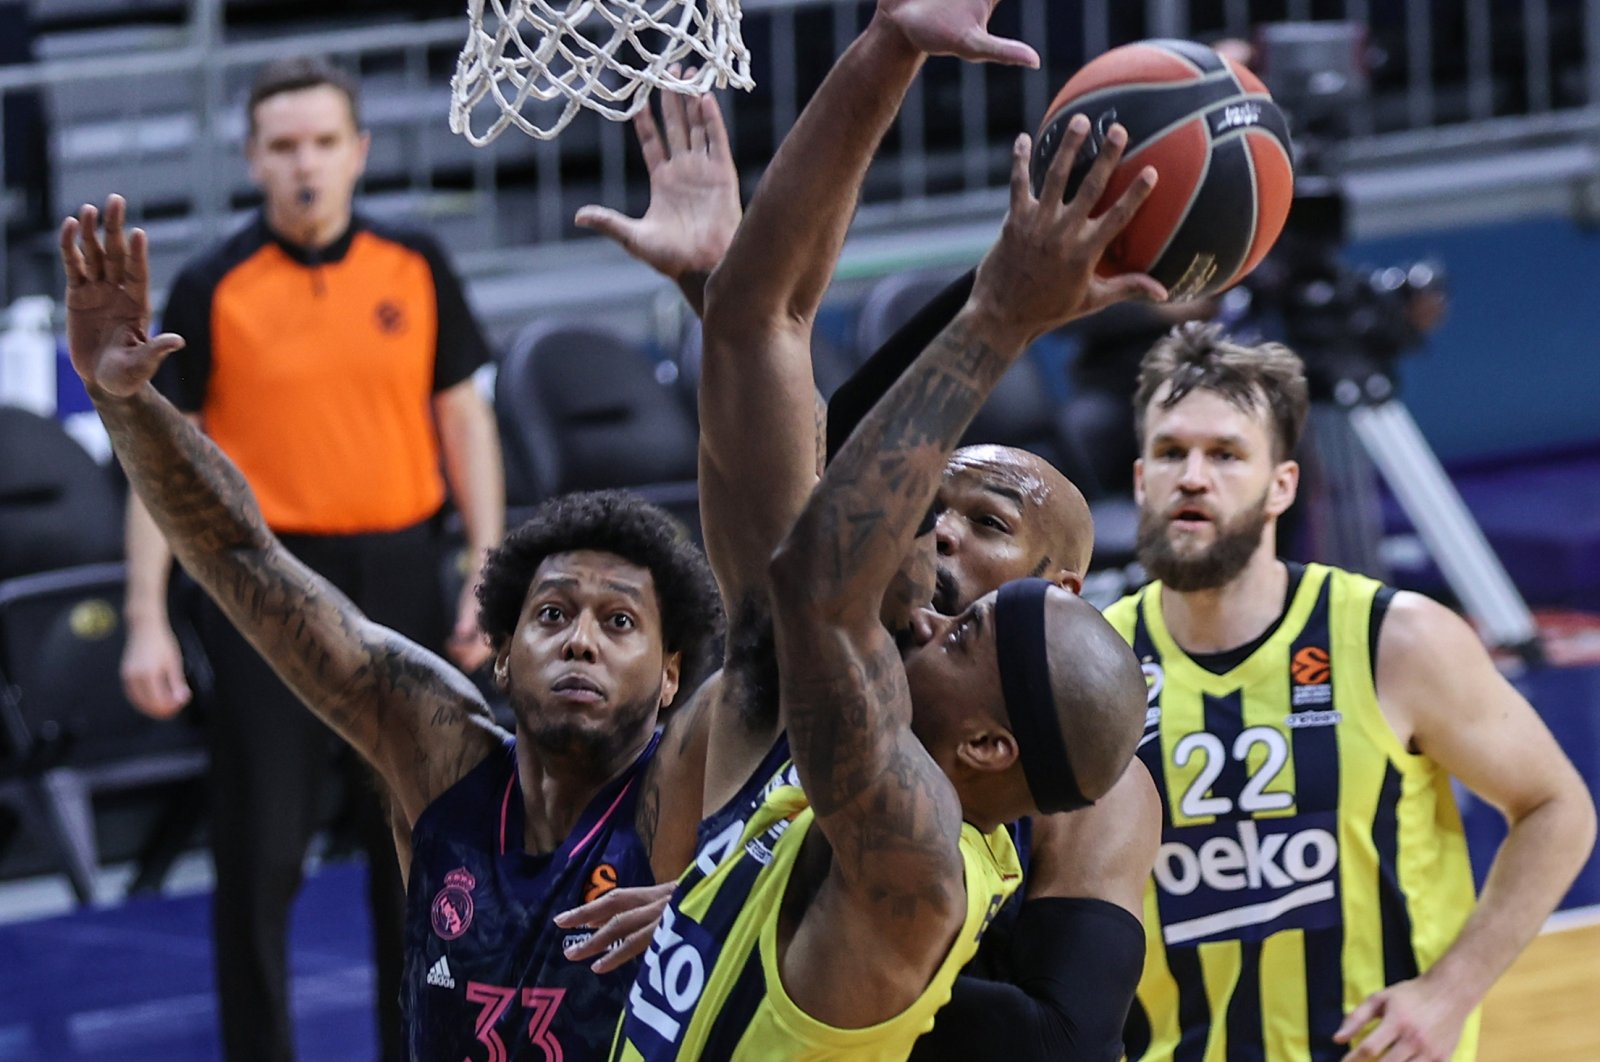 Fenerbahçe's Lorenzo Brown (C) approaches the hoop during the EuroLeague game against Real Madrid, Istanbul, Turkey, April 8, 2021. (AA Photo)